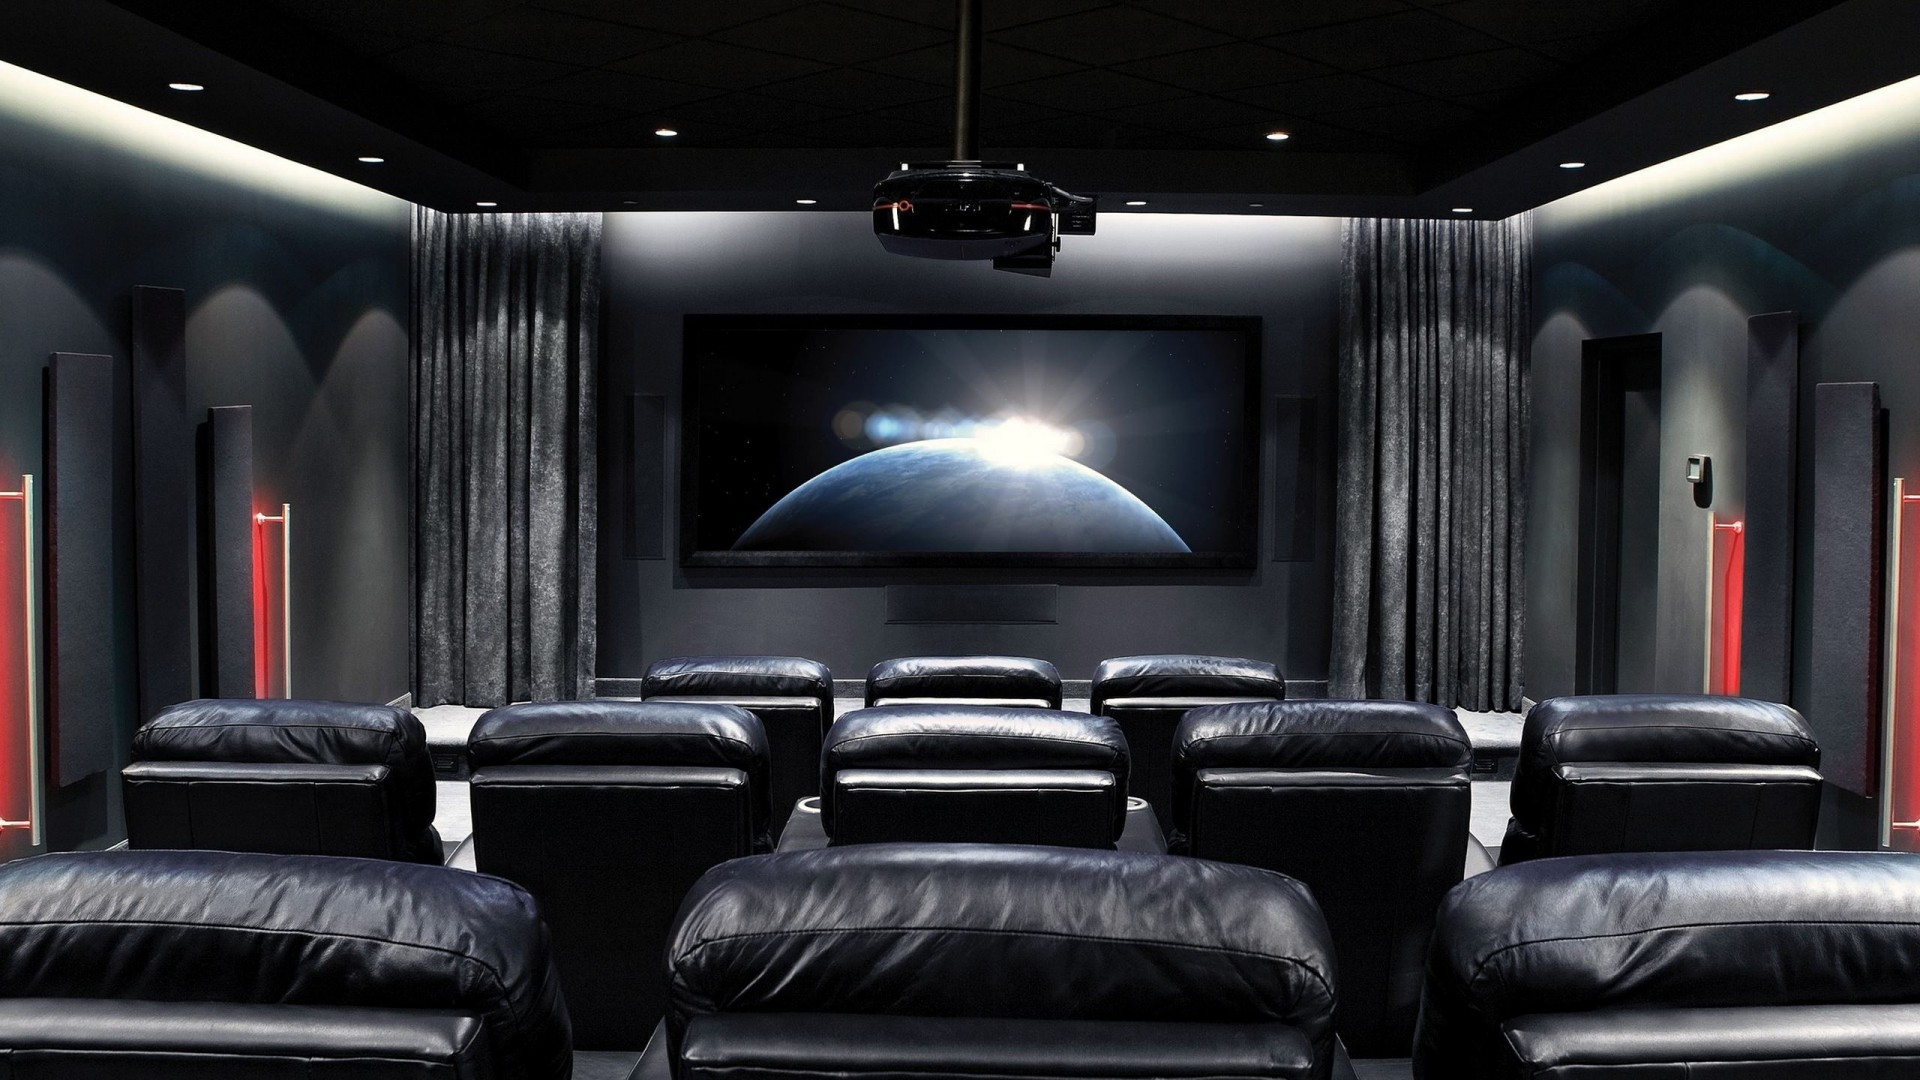 Gorgeous cinema wallpaper full hd pictures - Home theater wallpaper ...